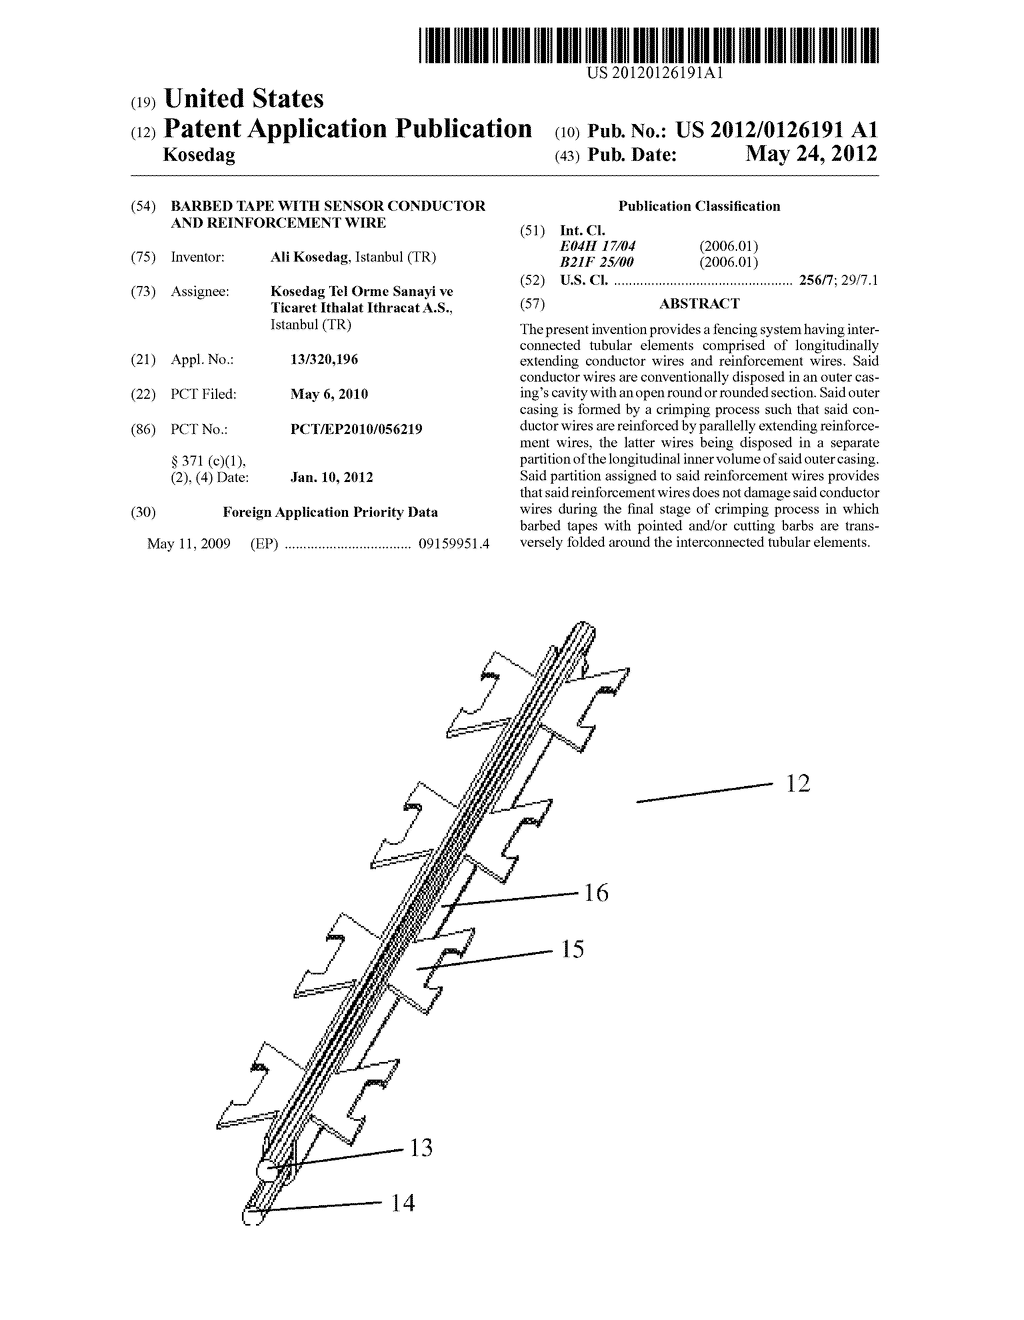 barbed tape with sensor conductor and reinforcement wire diagram barbed wire graphics barbed tape with sensor conductor and reinforcement wire diagram, schematic, and image 01